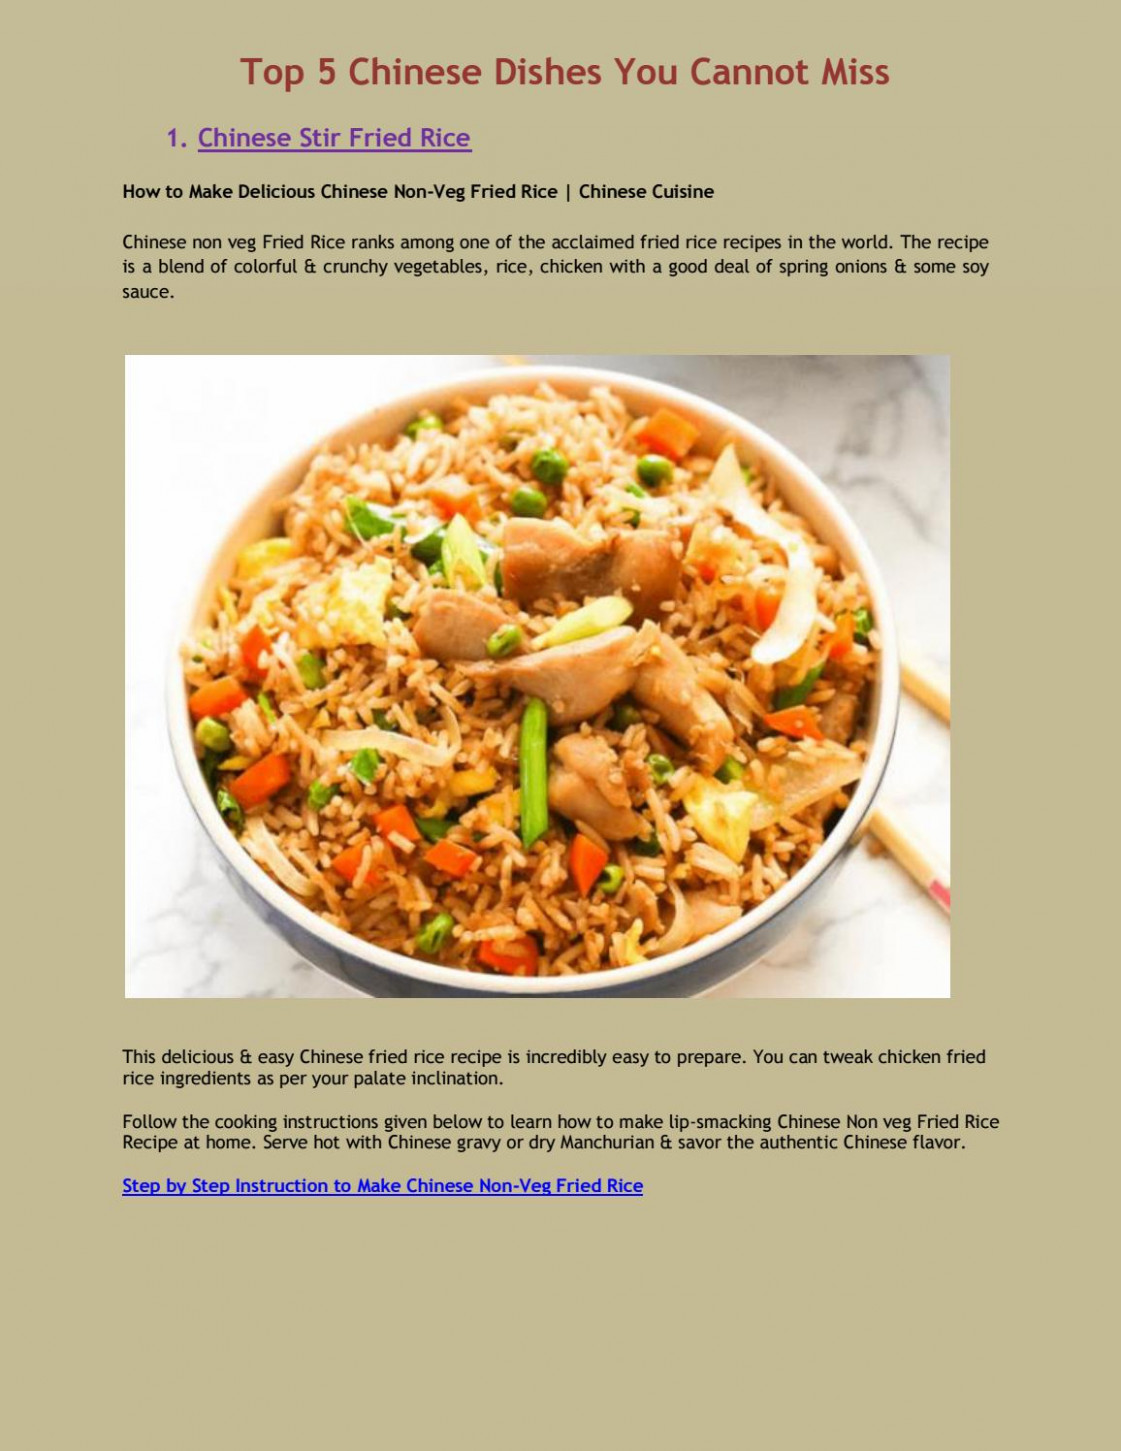 Top 13 Chinese Dishes You Cannot Miss by PositiveNewsTrands ..